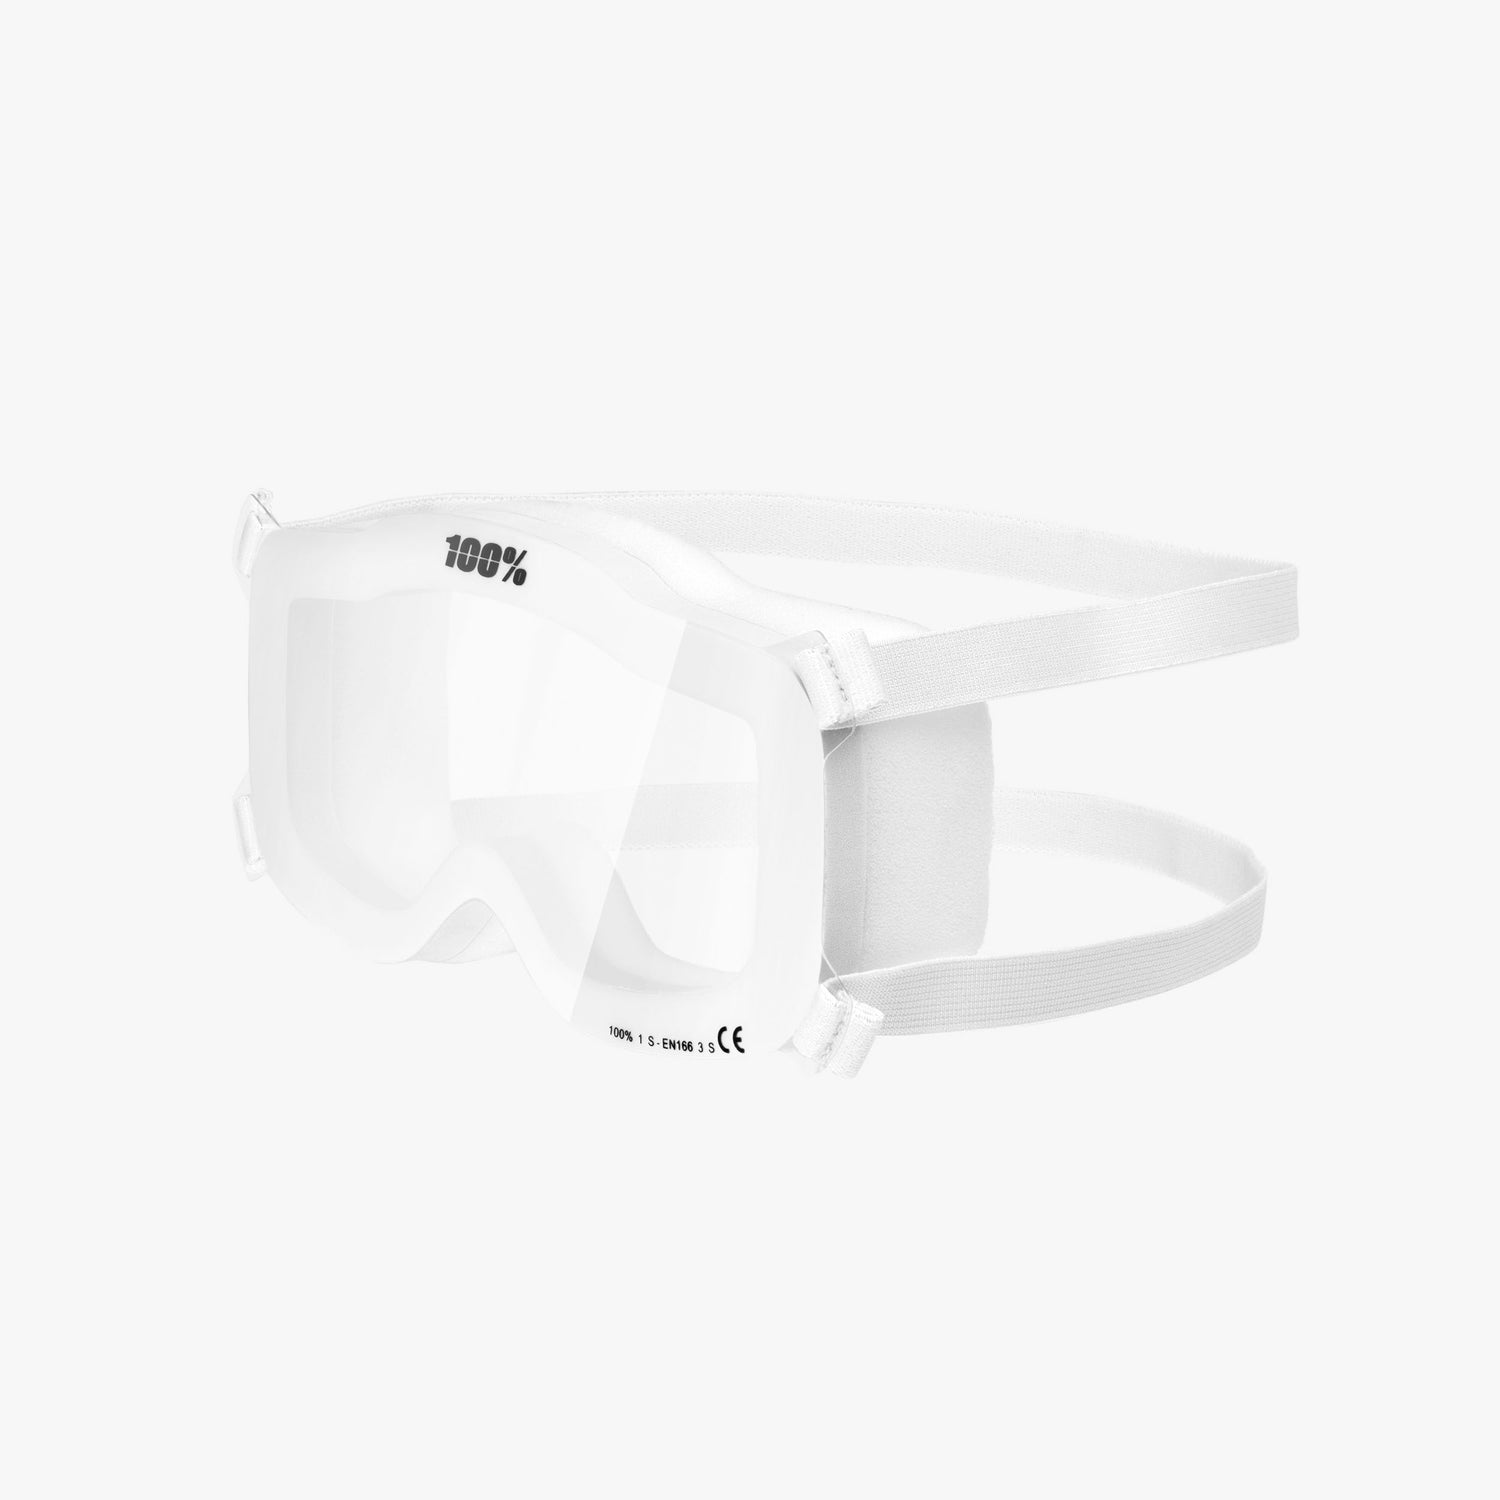 100% PPE Goggle White Clear Lens